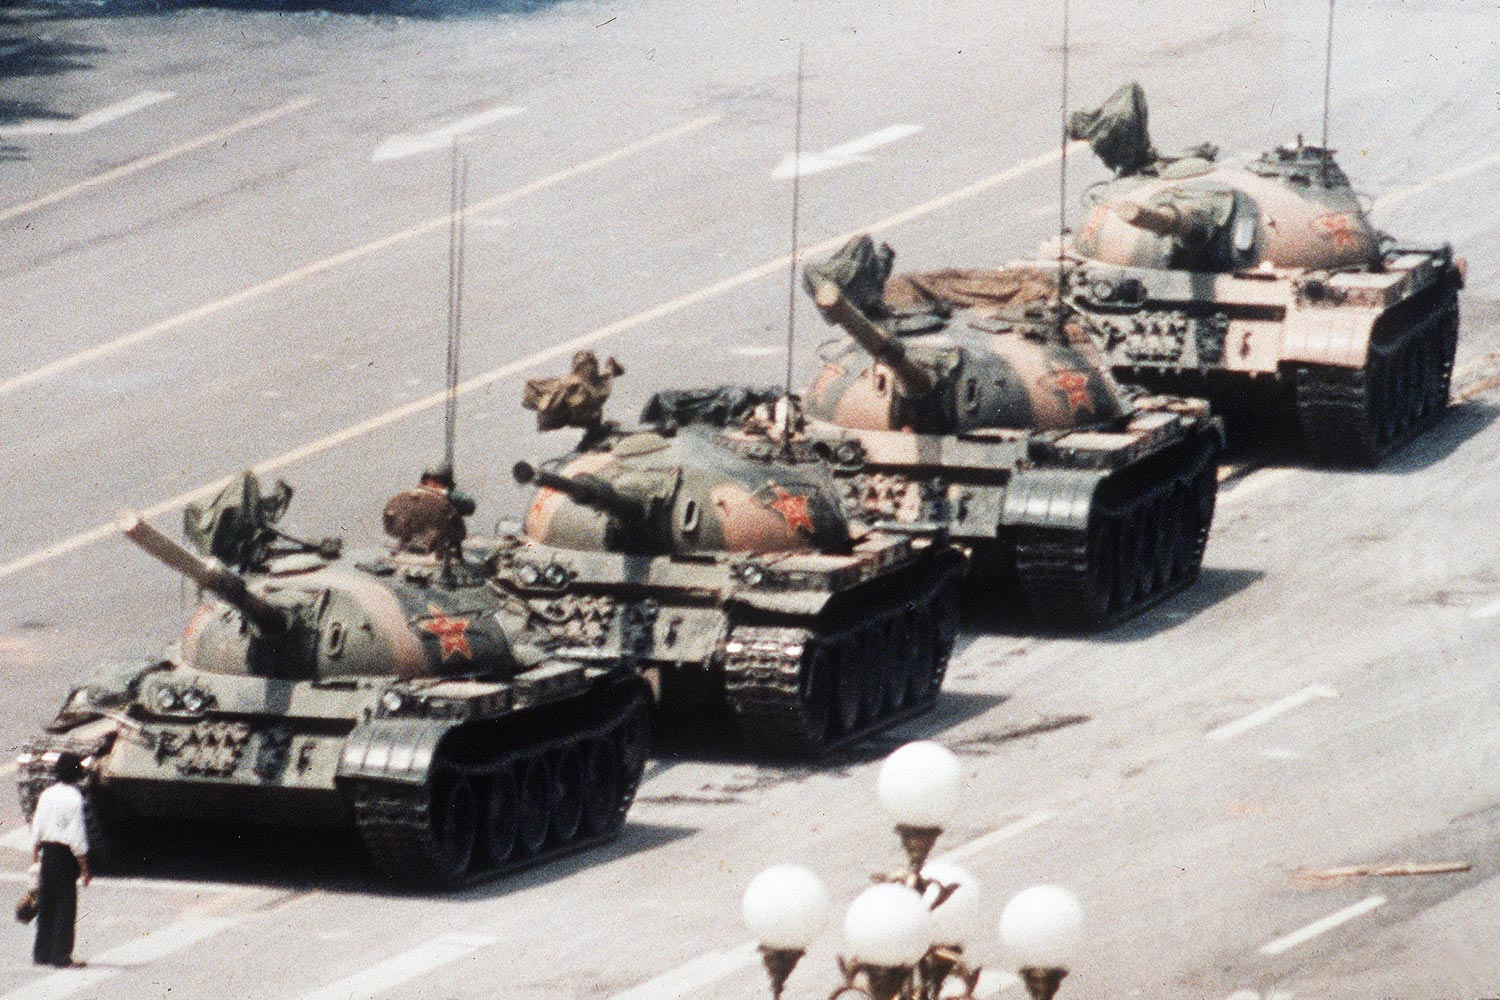 A Chinese man stands alone to block a line of tanks heading east on Beijing's Changan Avenue in Tiananmen Square on June 5, 1989. The man, calling for an end to the recent violence and bloodshed against pro-democracy demonstrators, was pulled away by bystanders, and the tanks continued on their way.